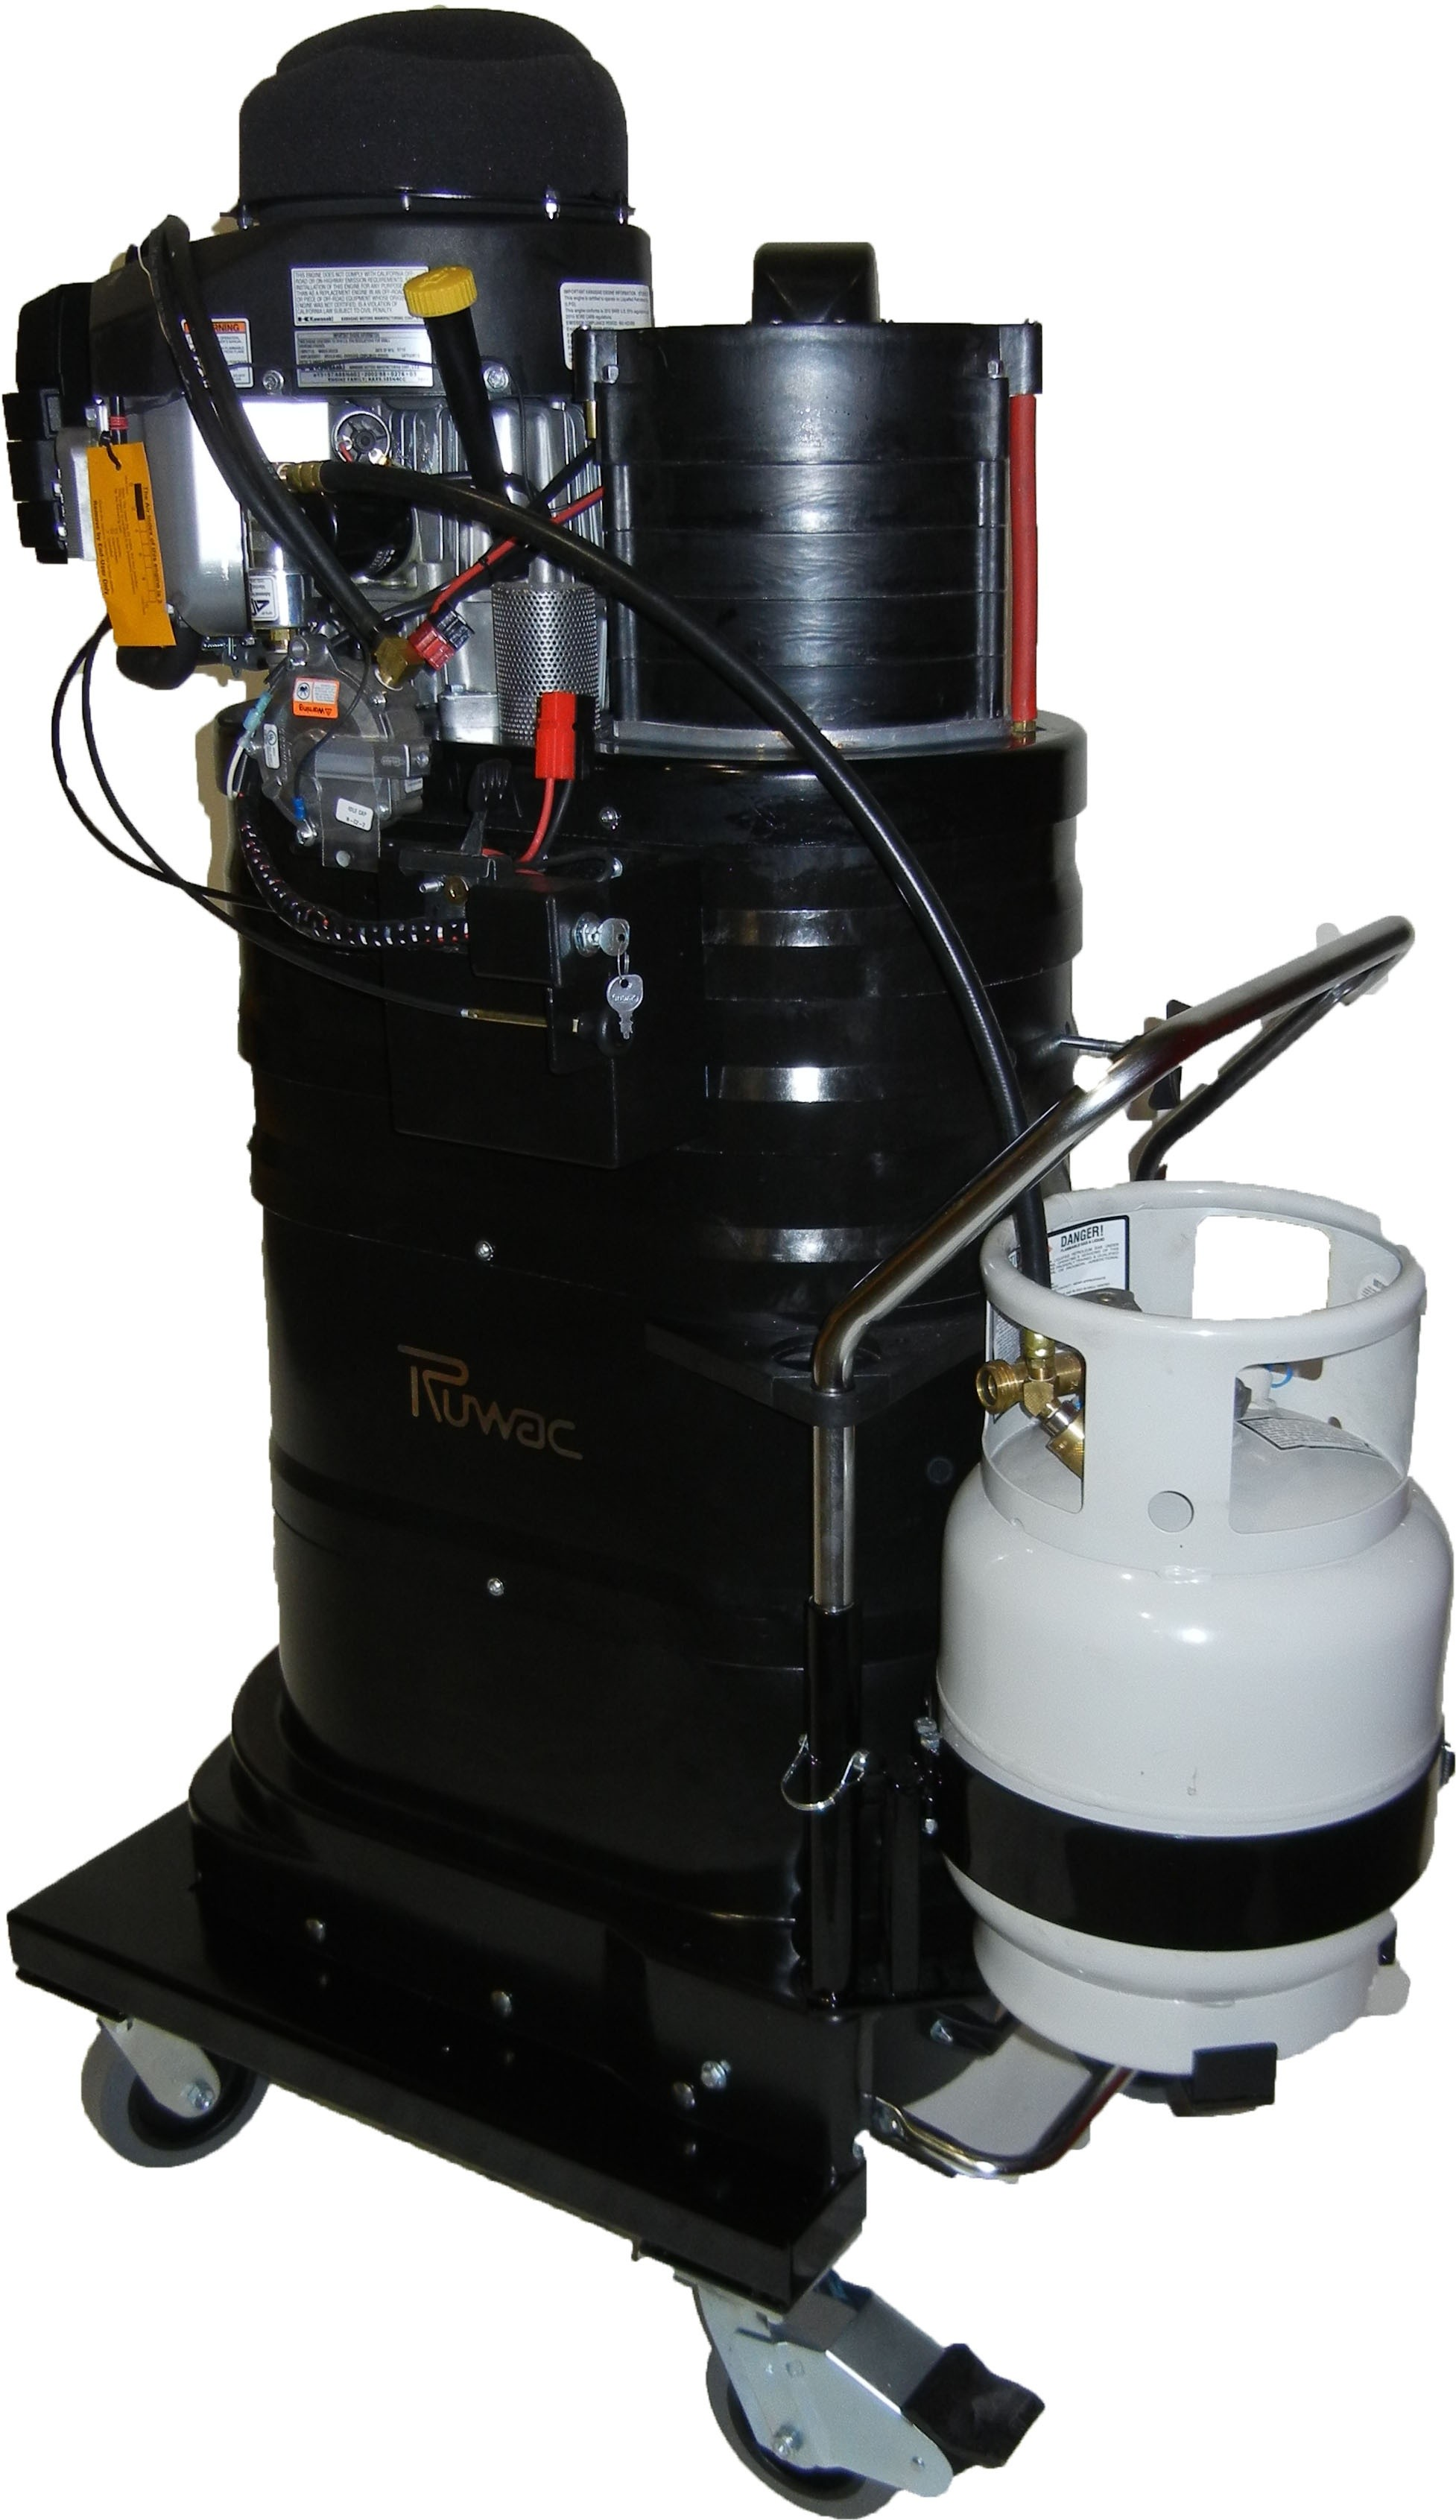 New dust extraction equipment